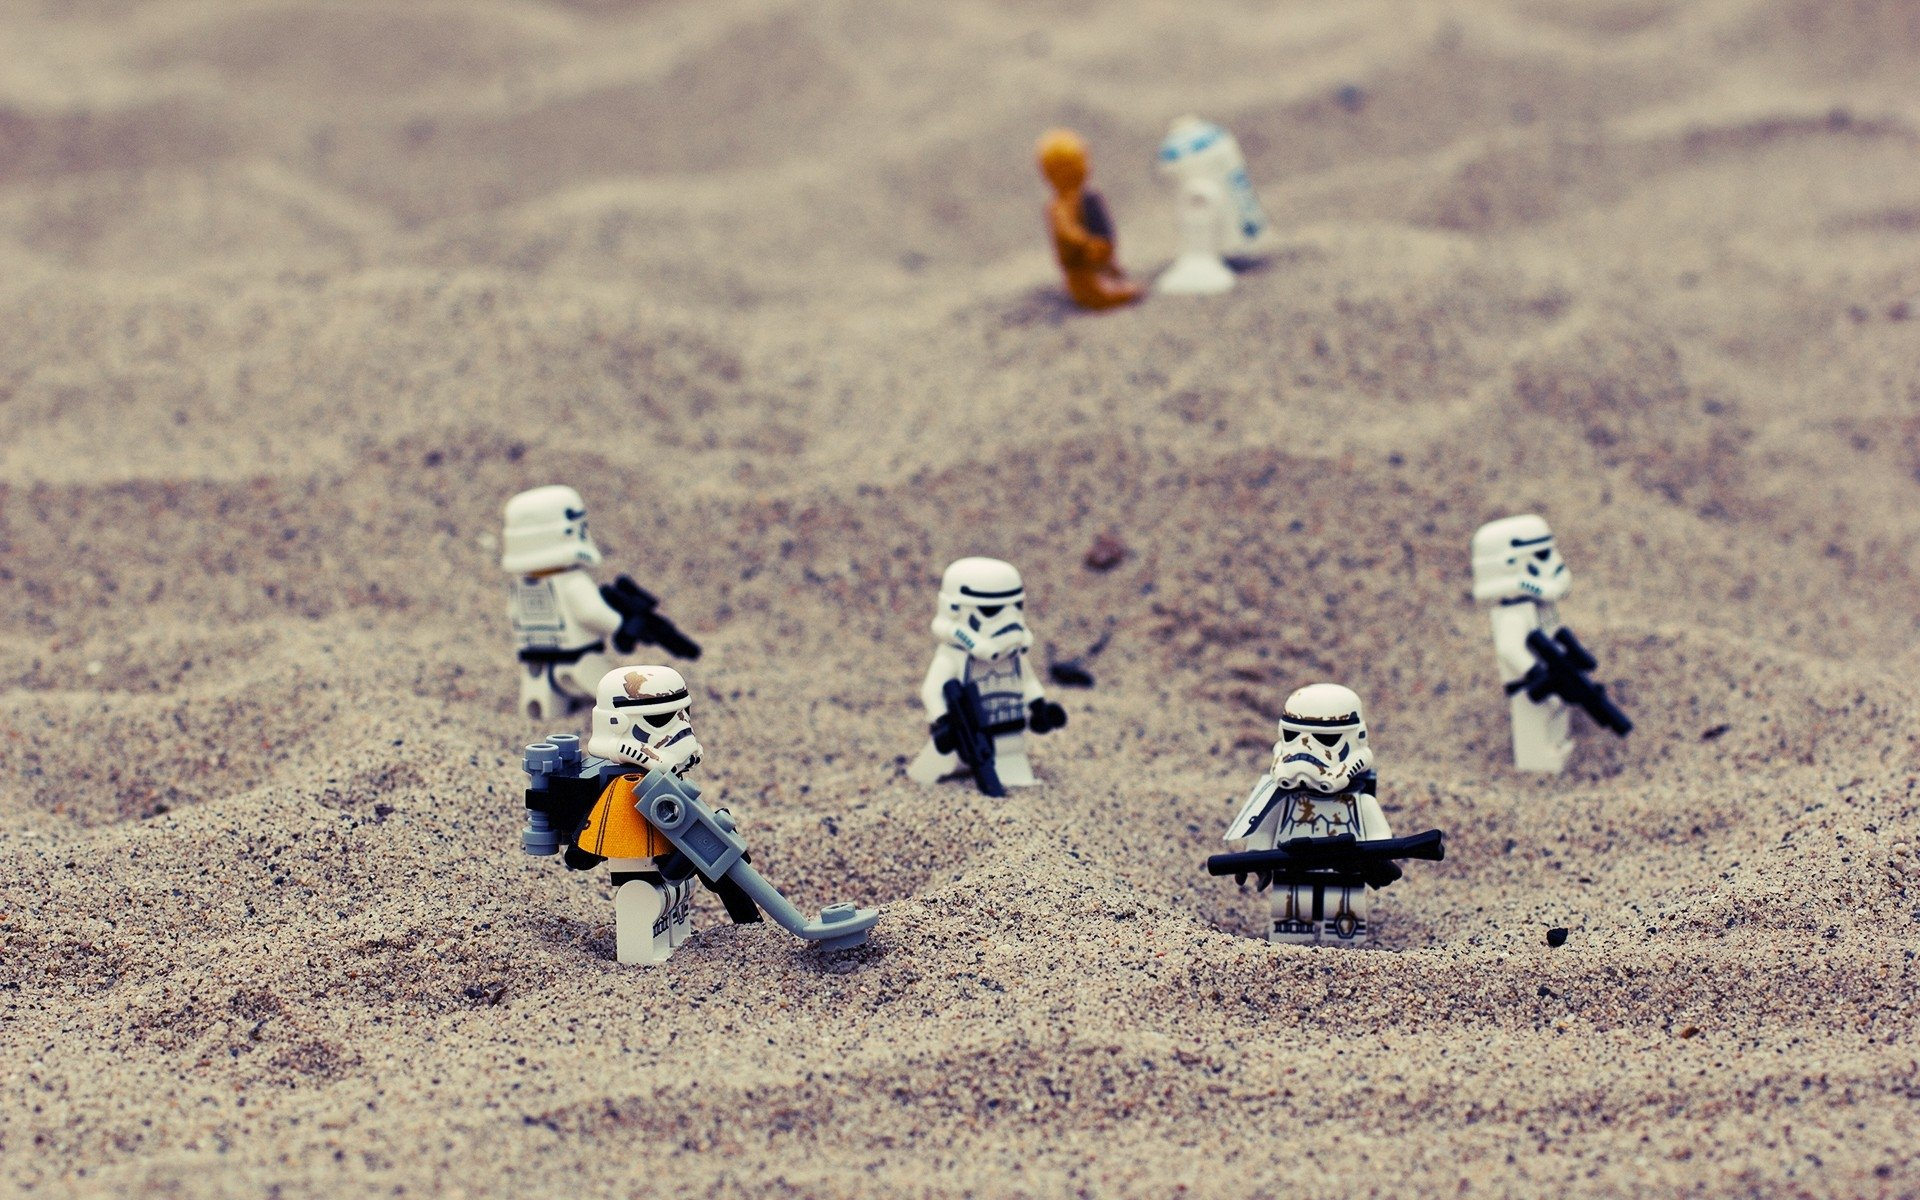 Lego hd wallpaper background image 1920x1200 id - Lego wallpaper ...